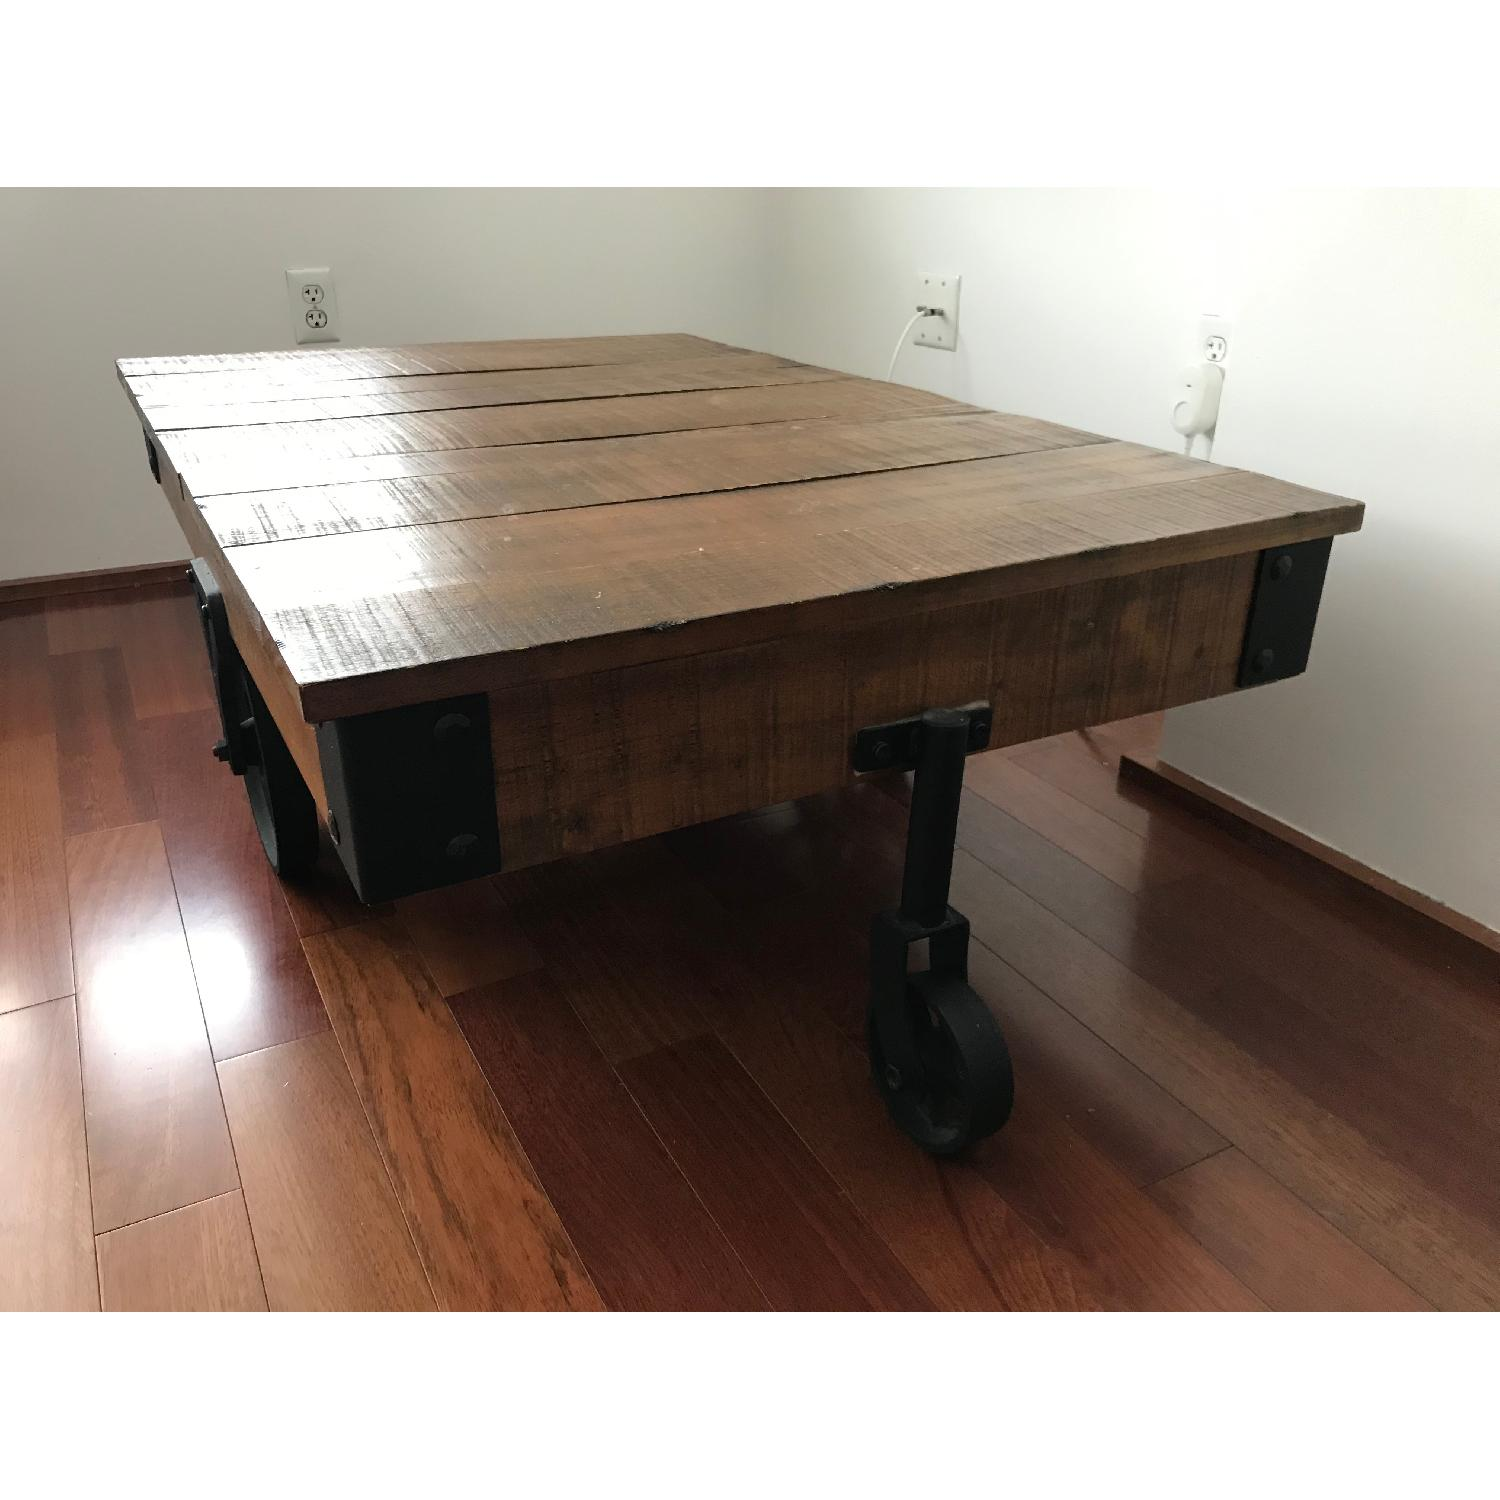 Coaster Distressed Country Wagon Coffee Table - image-3